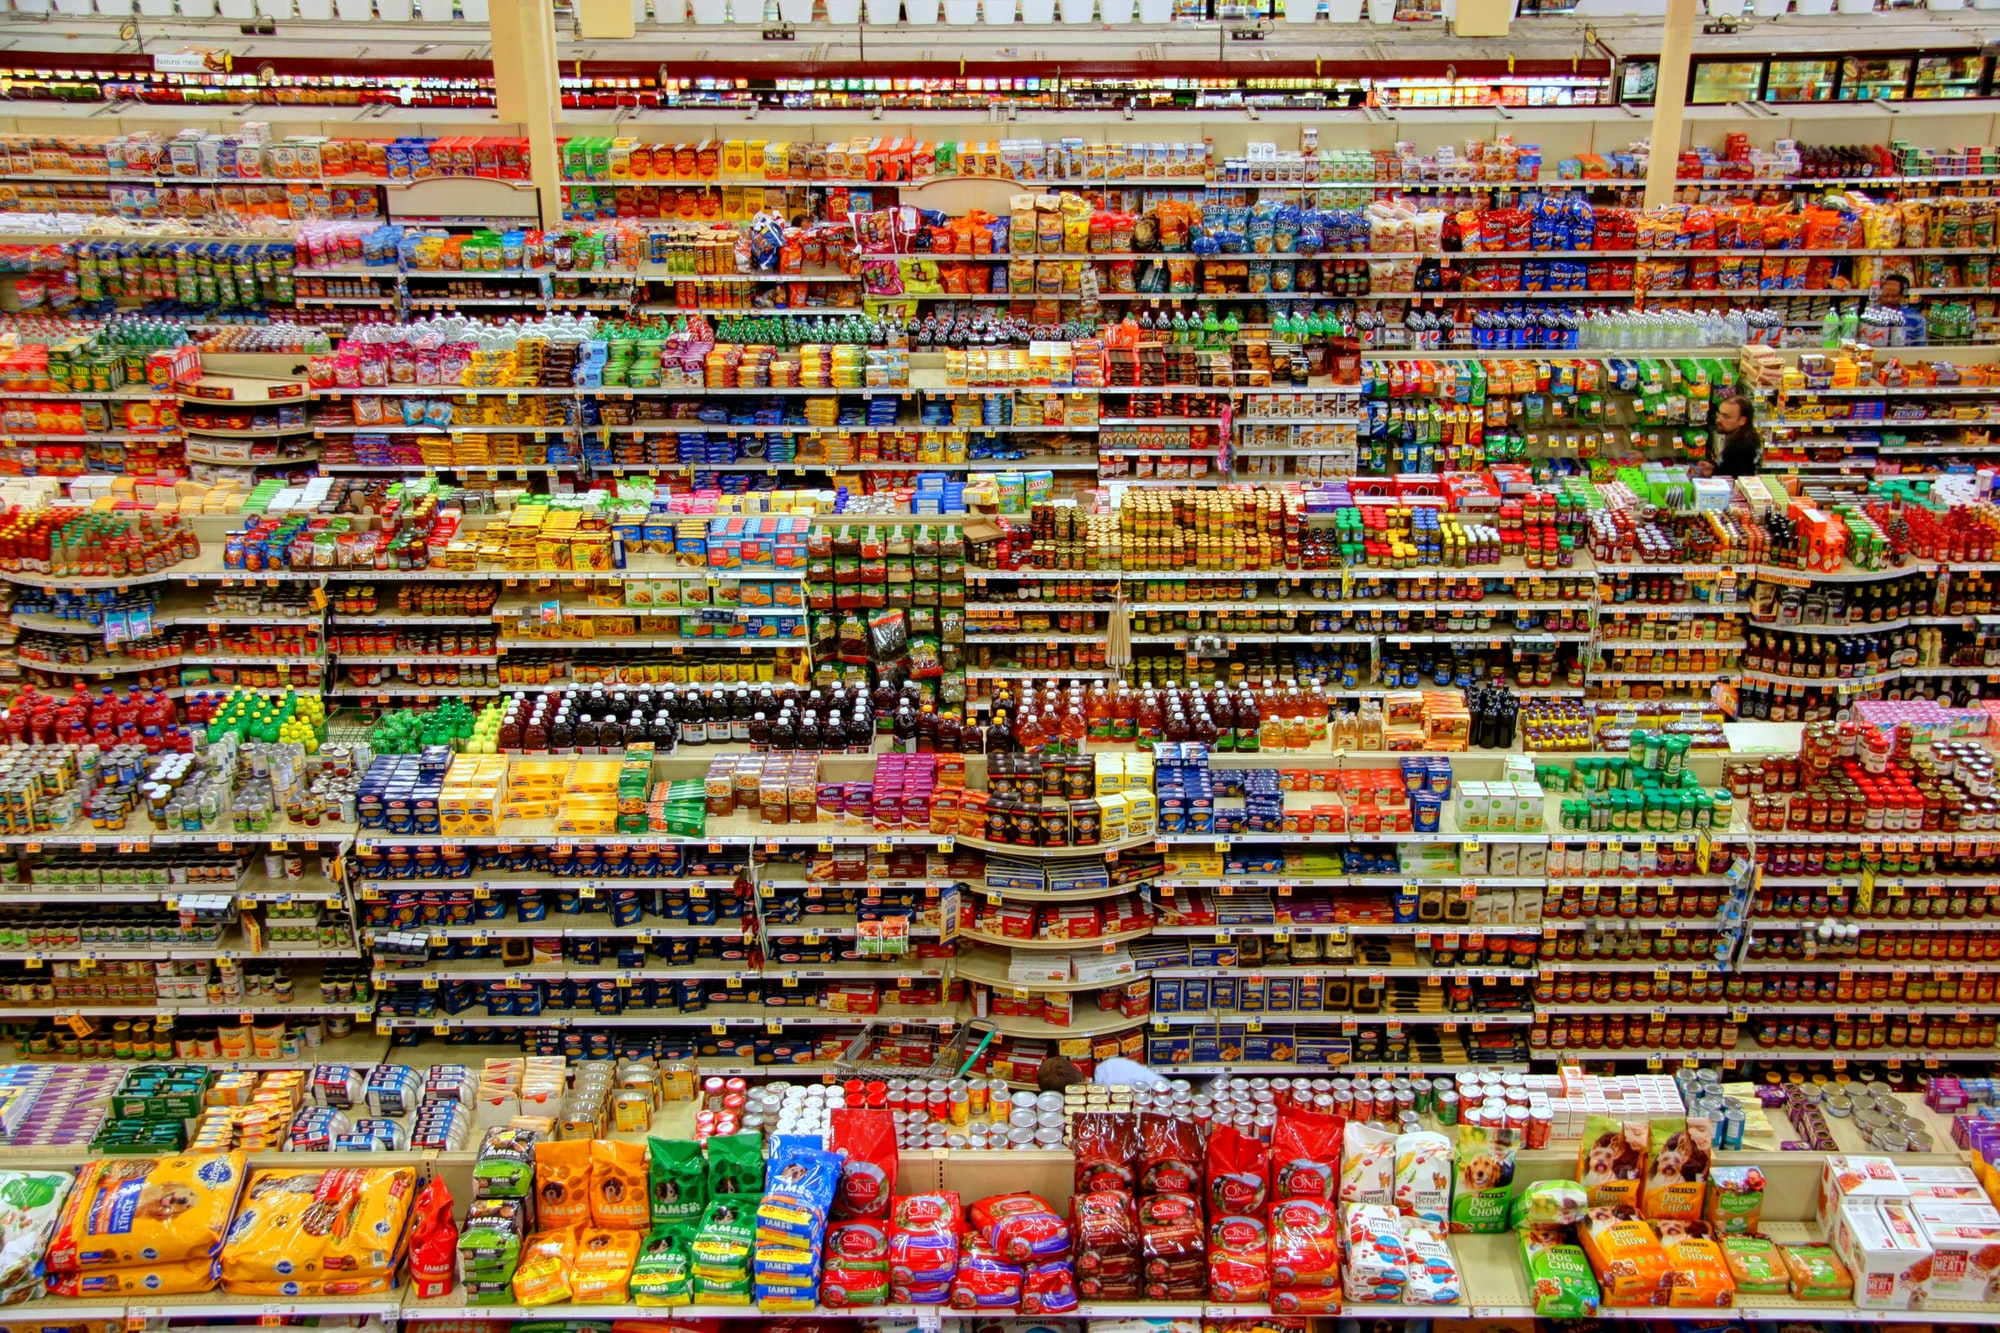 This is an aerial shot of the groceries section of the Fred Meyer superstore in Redmond, WA. I took this picture while on vacation in the Pacific northwest. I had seen a similar picture of a Fred Meyer store in Portland, OR and hear that this store had a publicly accessible vantage for taking an aerial photograph. I took the shot in HDR mode and used Photomatix to produce the finished image.